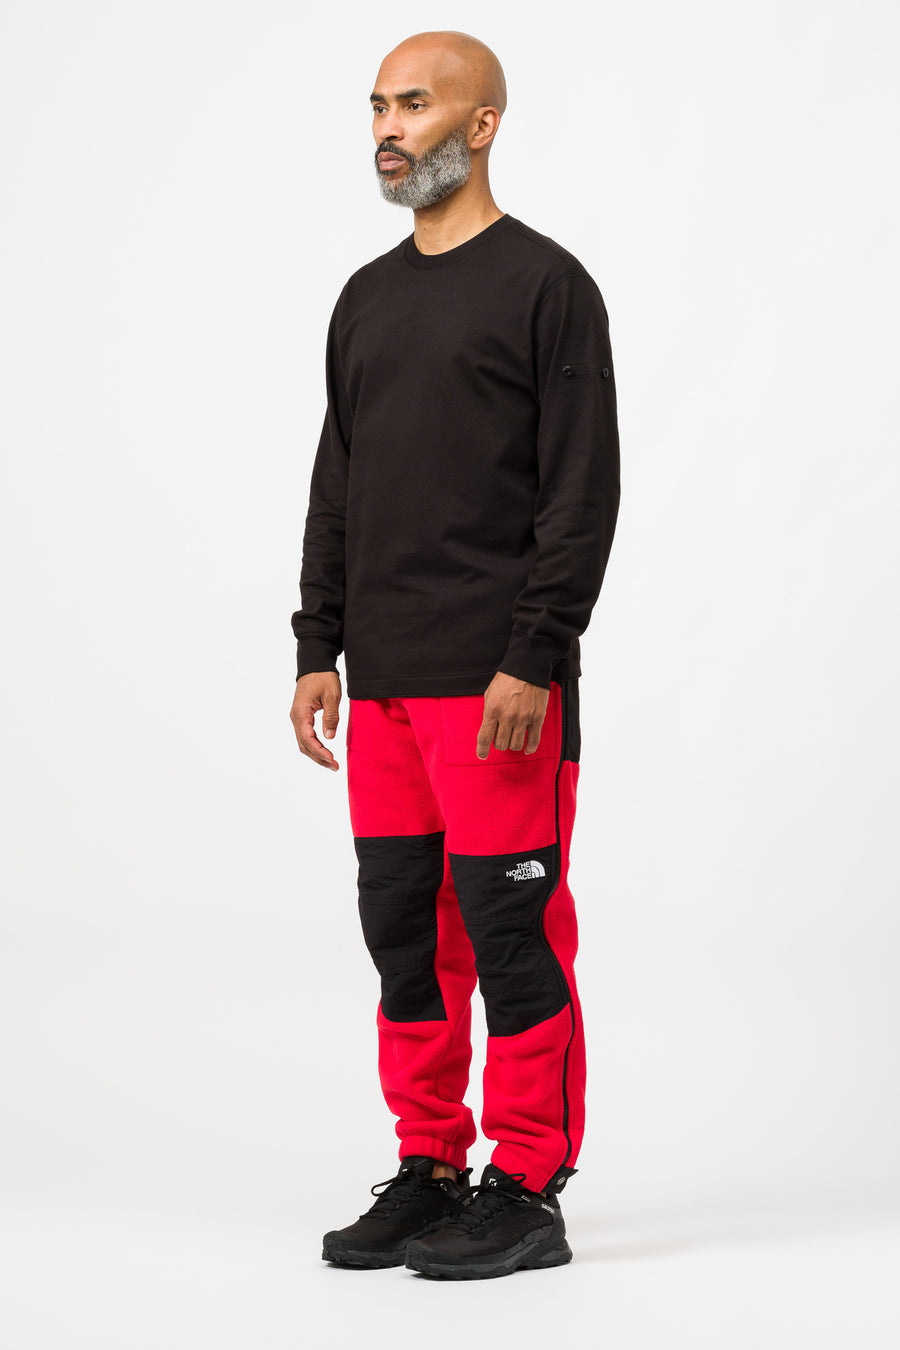 The North Face 95 Retro Denali Pant in Red - Notre